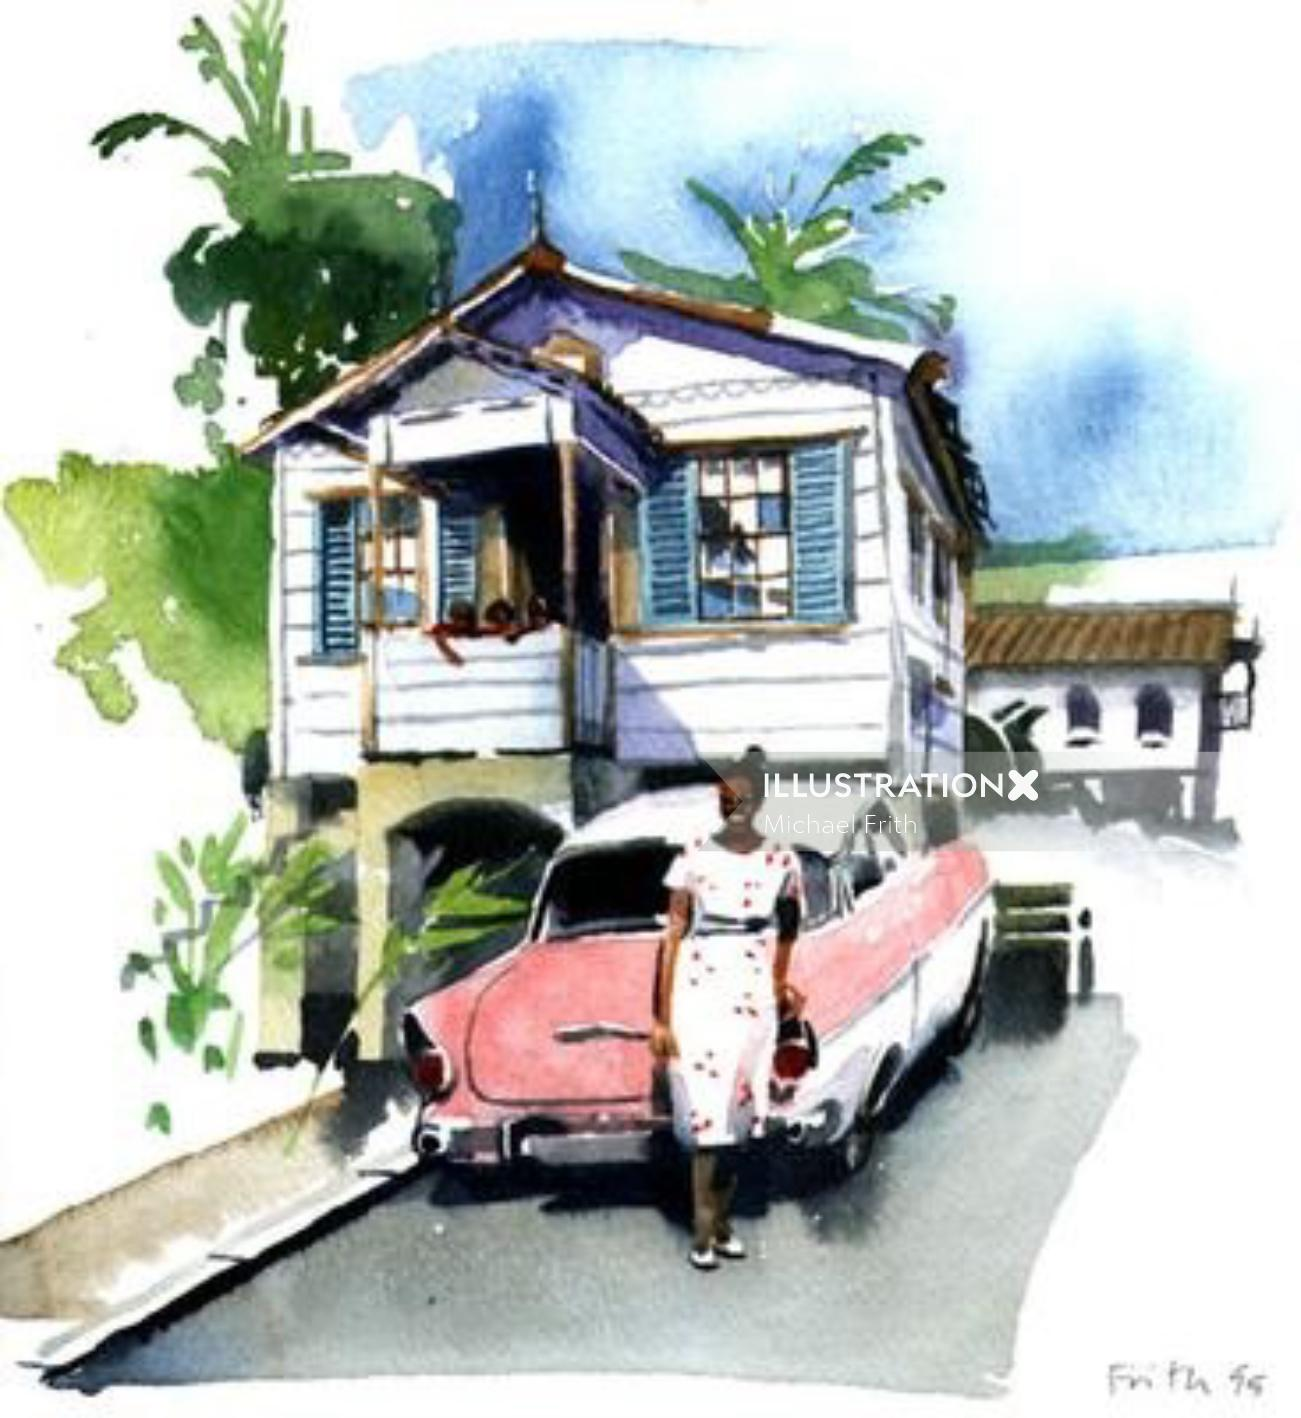 Architecture illustration of beautiful home